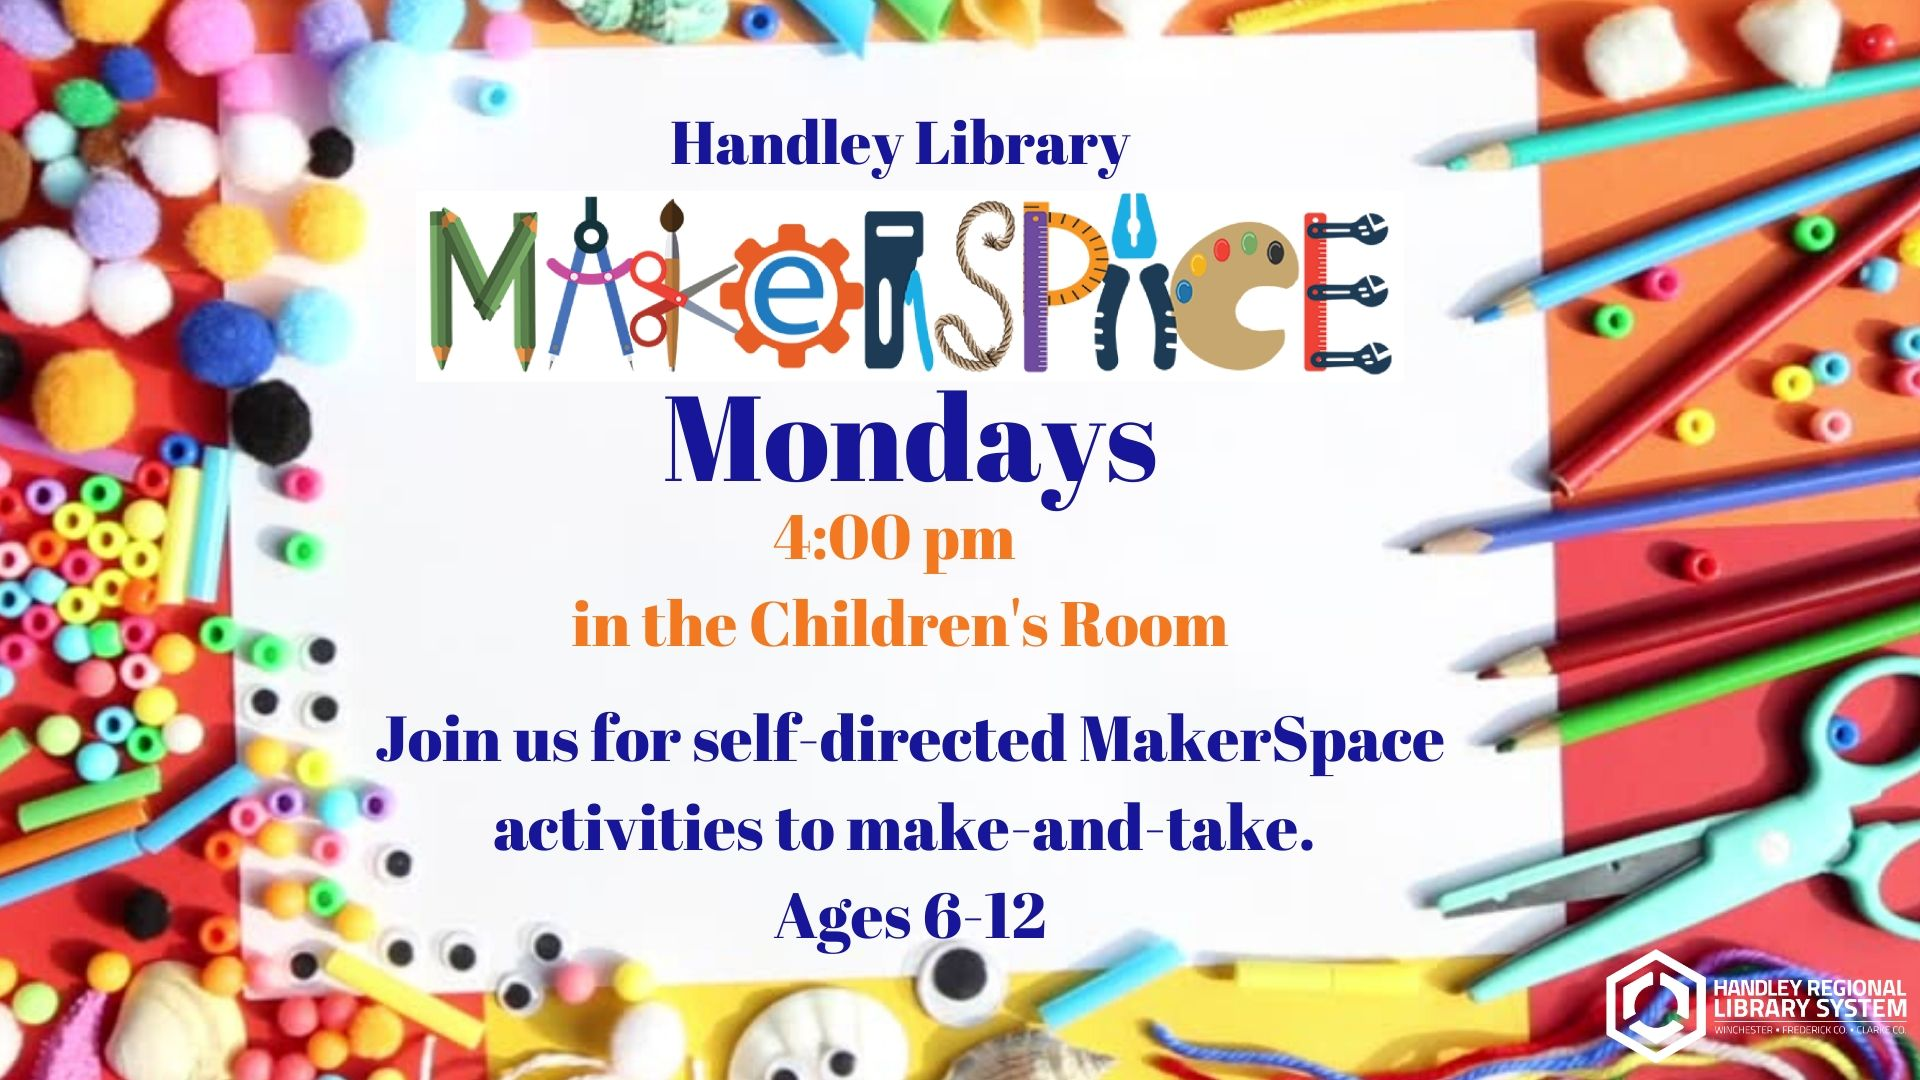 Makerspace Monday slide